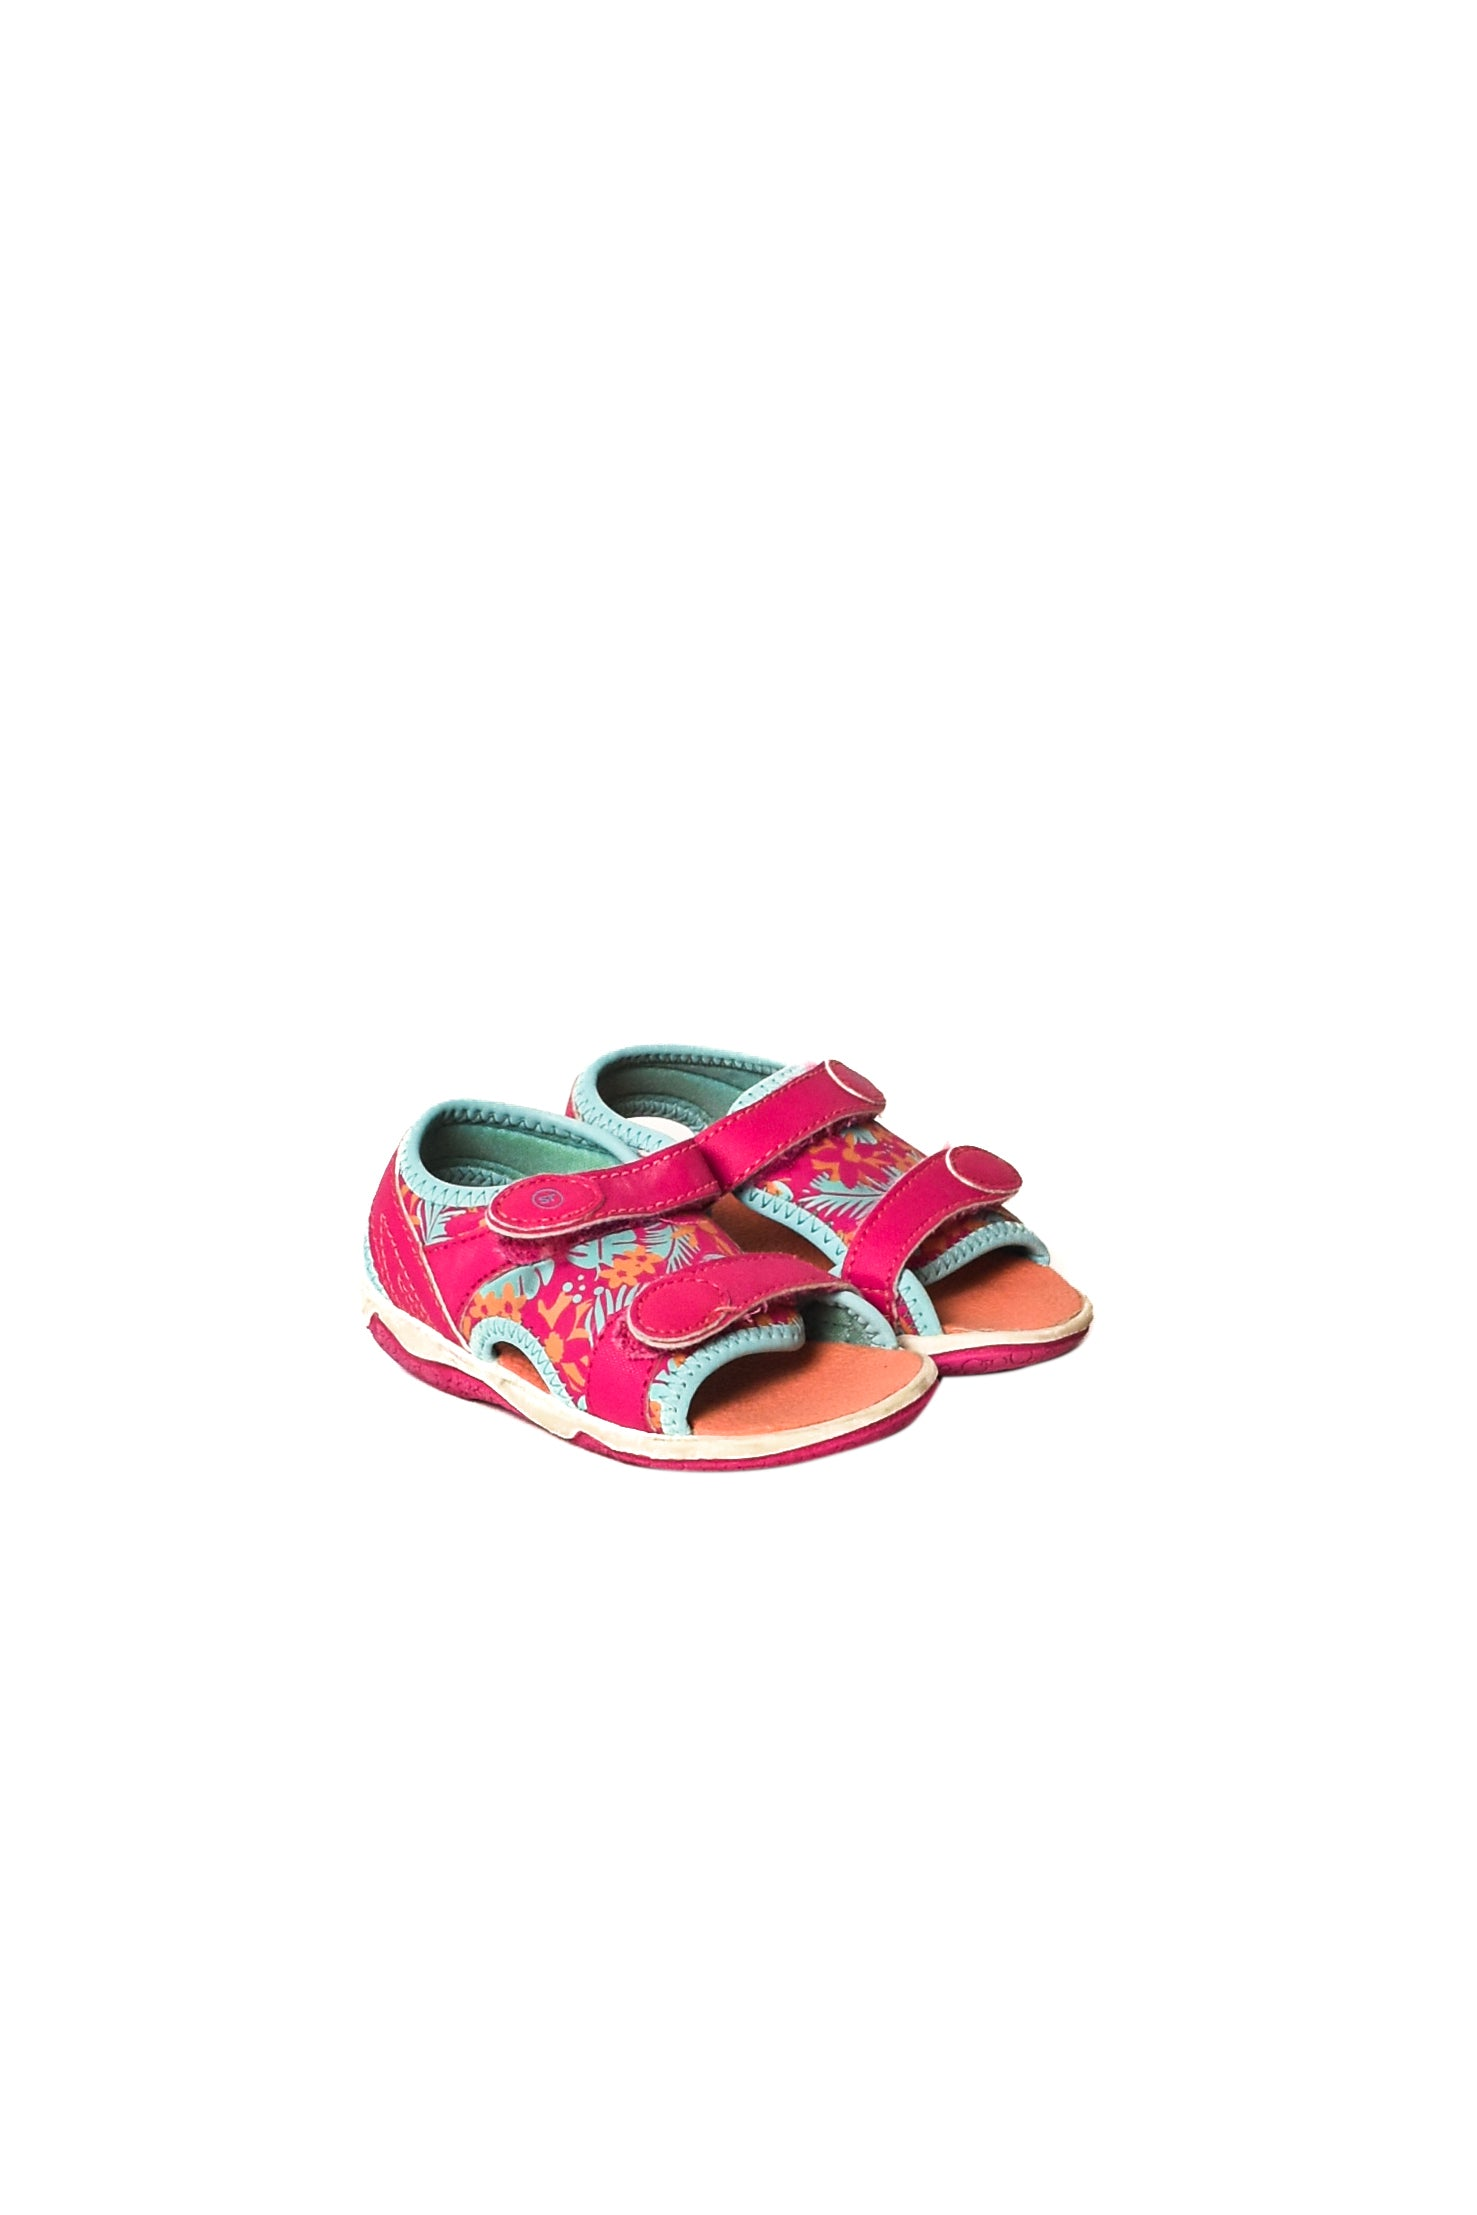 10012738 Stride Rite Baby ~ Sandals 18-24M (EU 22) at Retykle